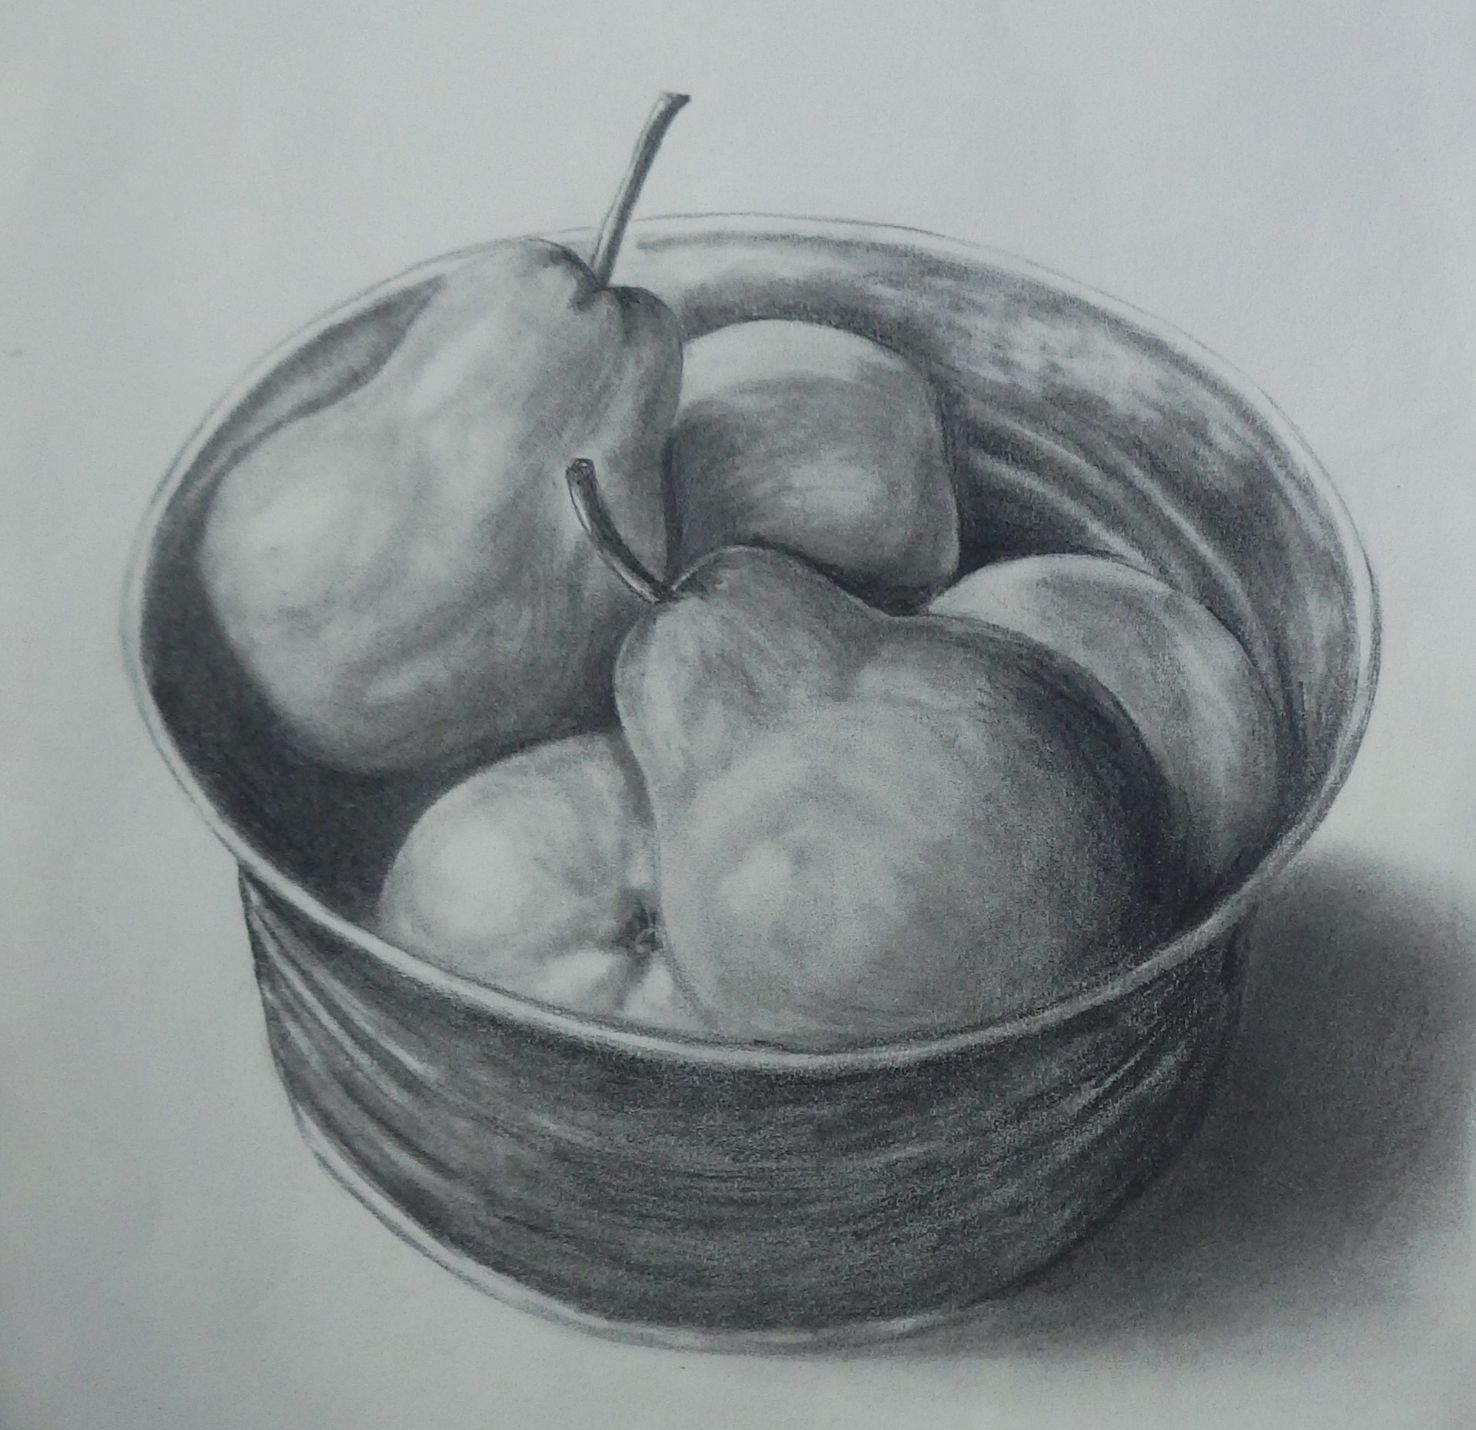 Still life pencil art ideas pears in a metal jar still life sketch